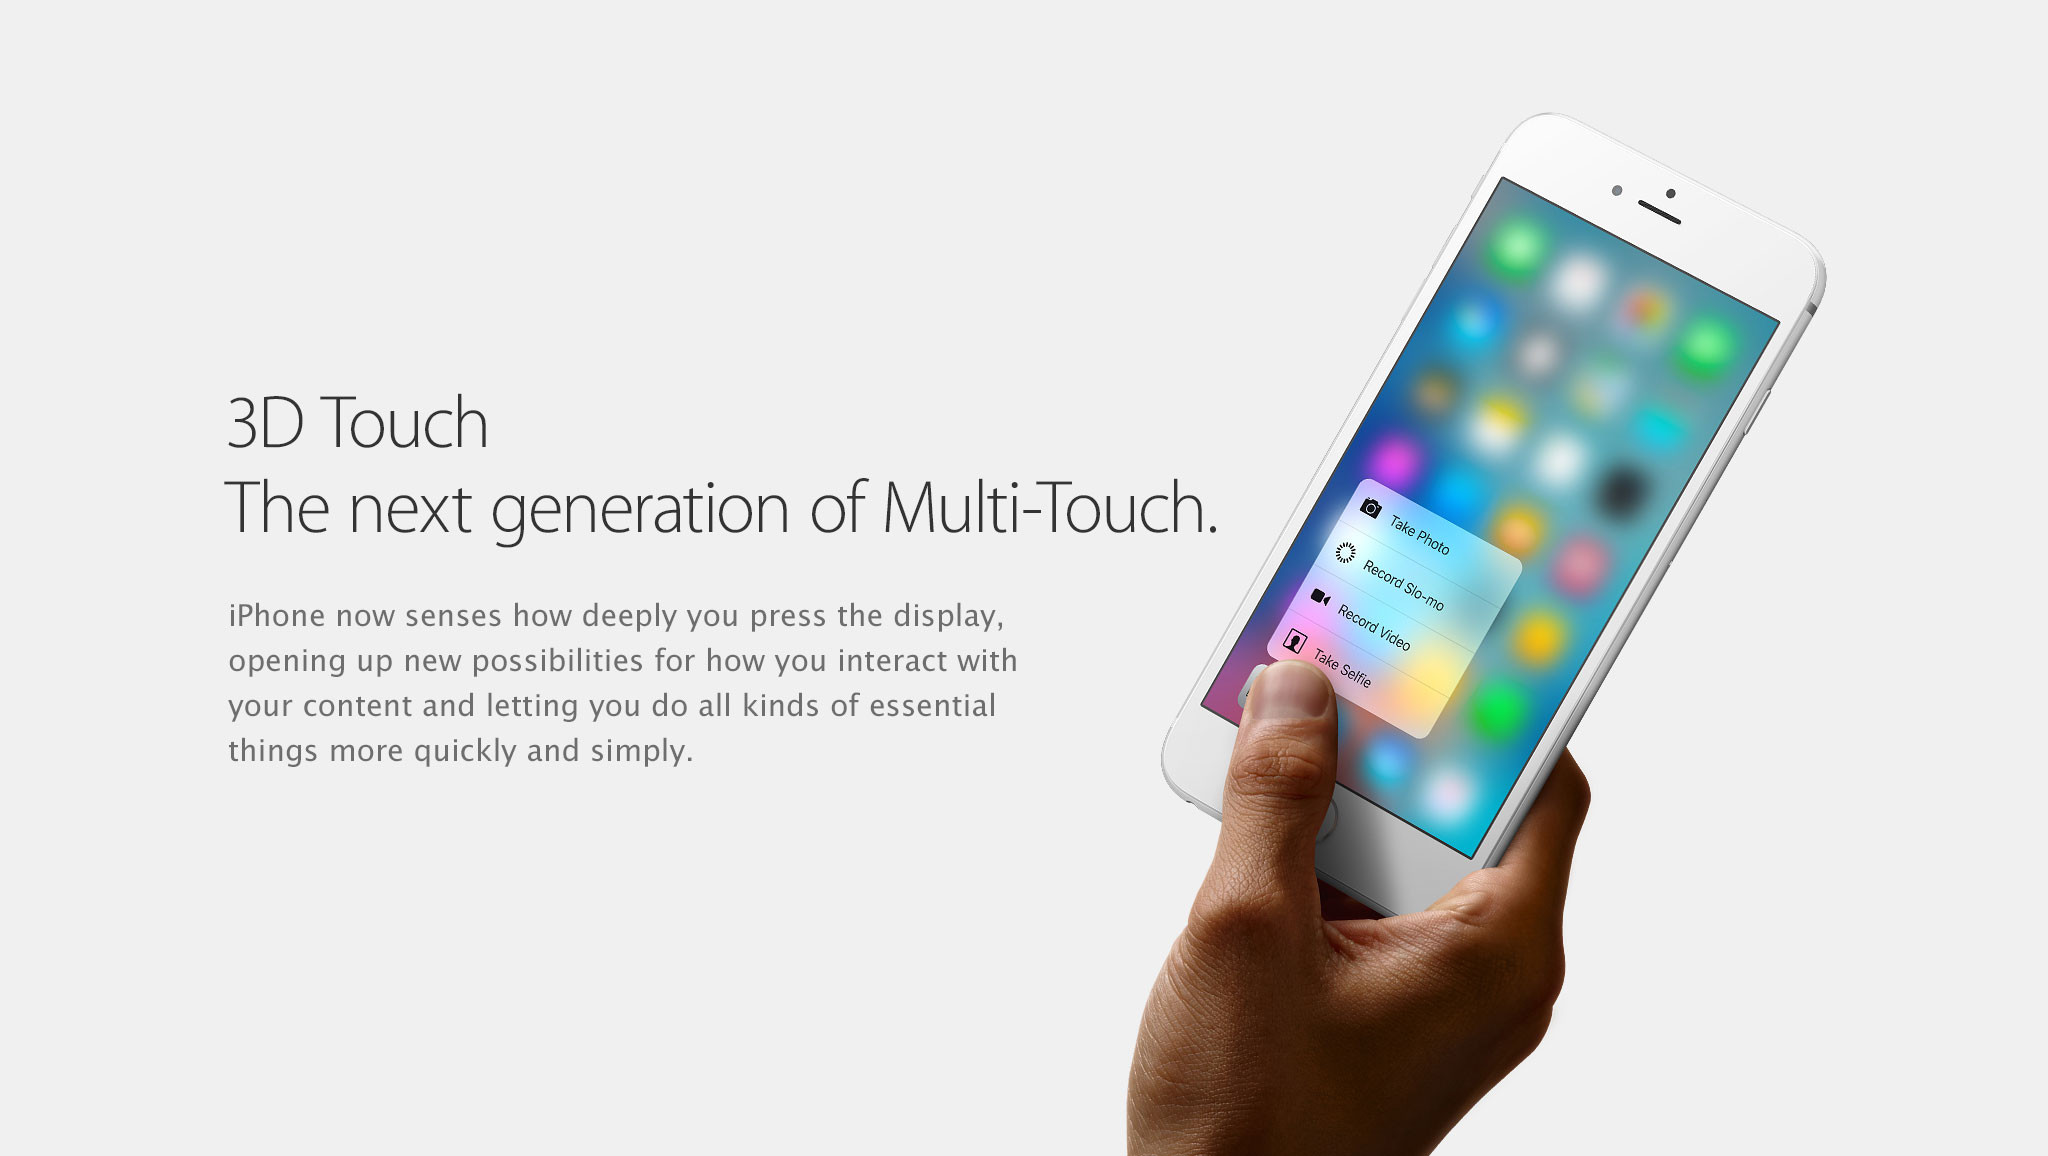 3D Touch. The next generation of Multi-Touch. iPhone now senses how deeply you press the display, opening up new possibilities for how you interact with your content and letting you do all kinds of essential things more quickly and simply.